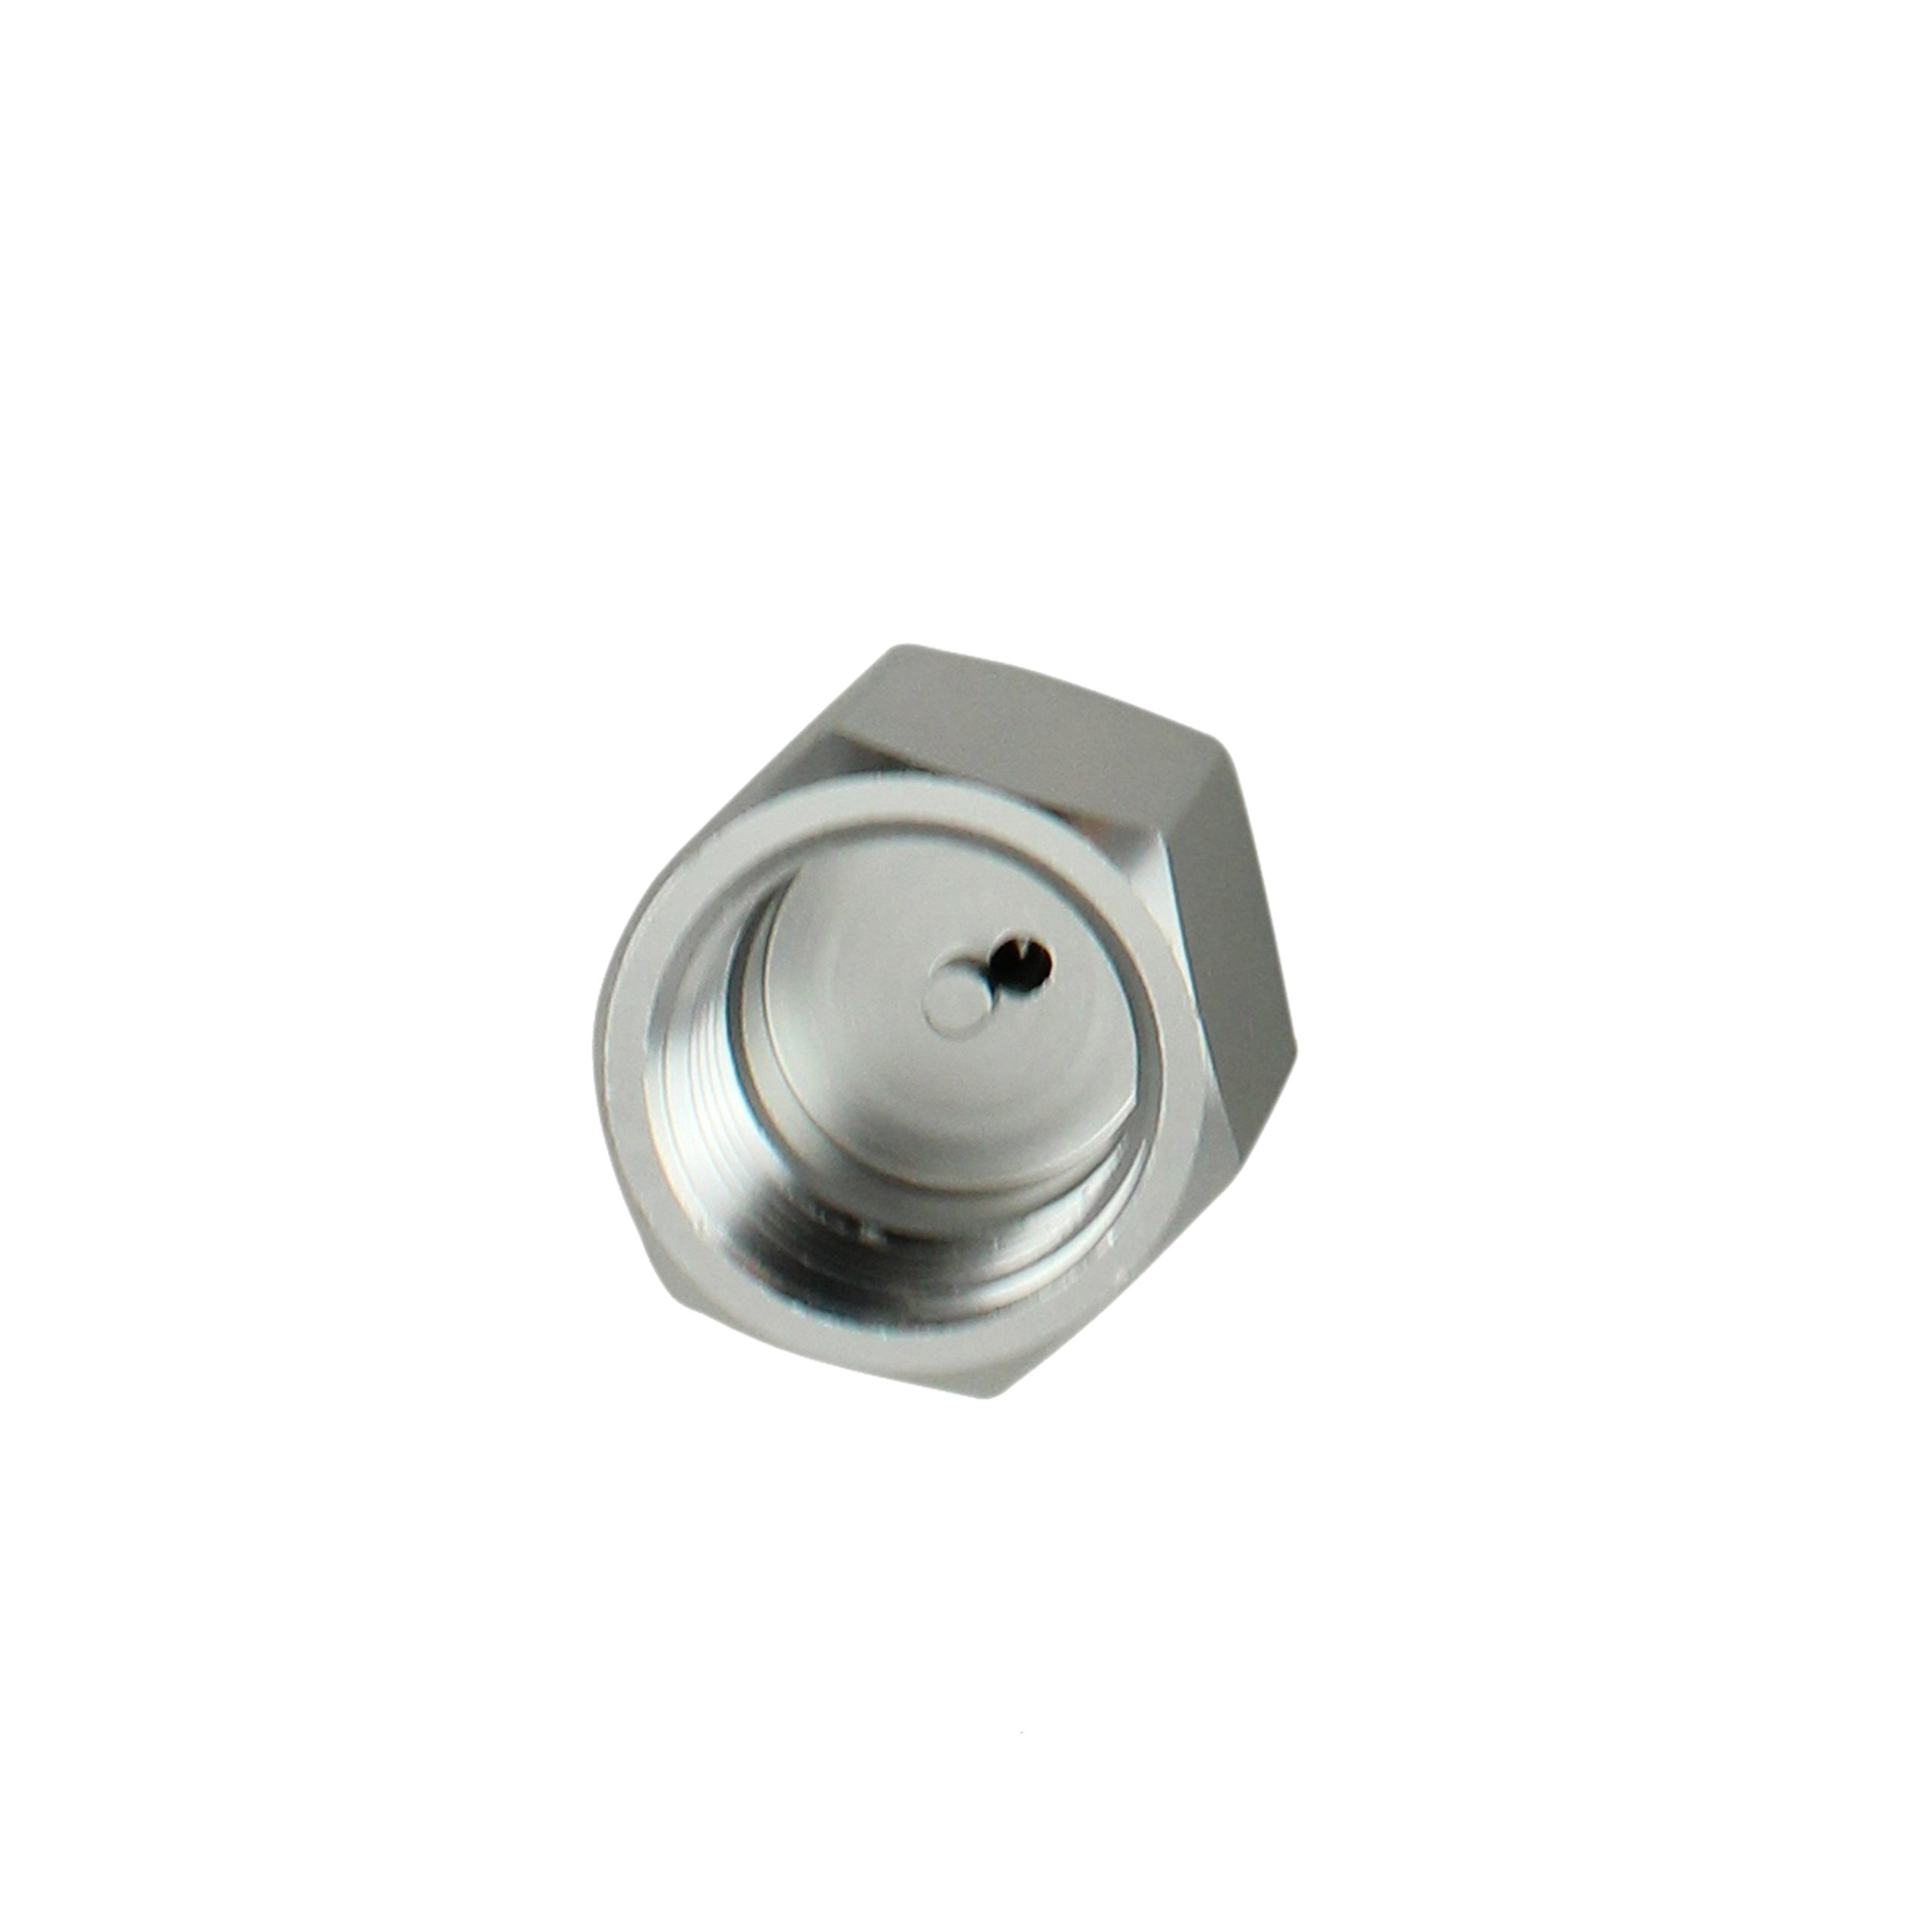 Accessories for Weekend Brewer Heavy Duty Regulators (Paintball Tank) by The Weekend Brewer